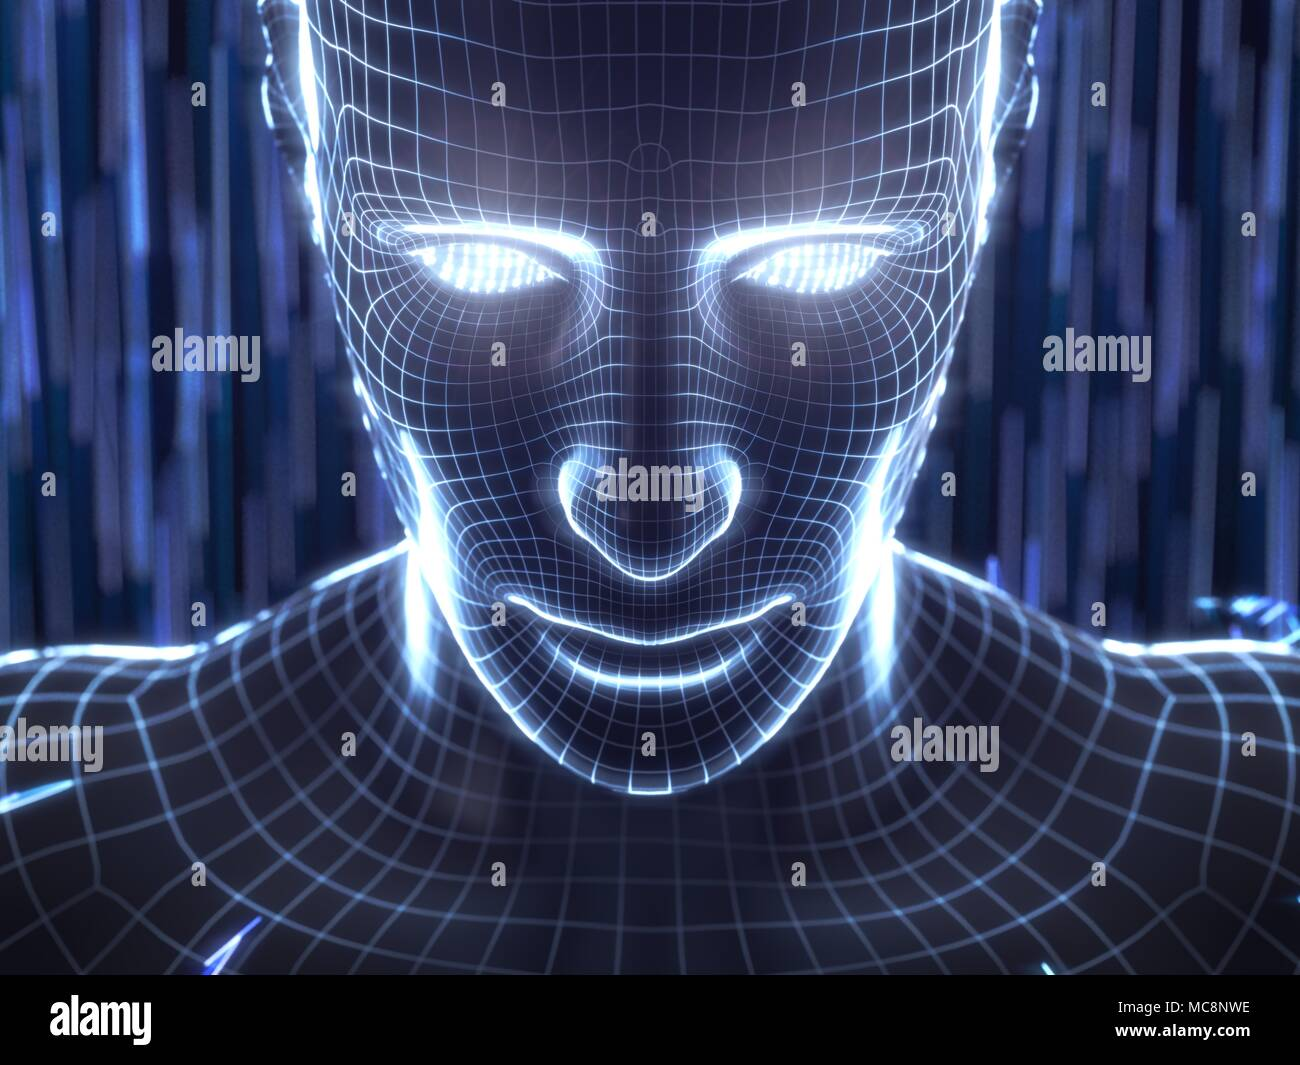 Intelligenza artificiale con concetto virtuale avatar umano. 3d illustrazione. Adatto per tecnologia, intelligenza artificiale, data mining,deep learnin Immagini Stock